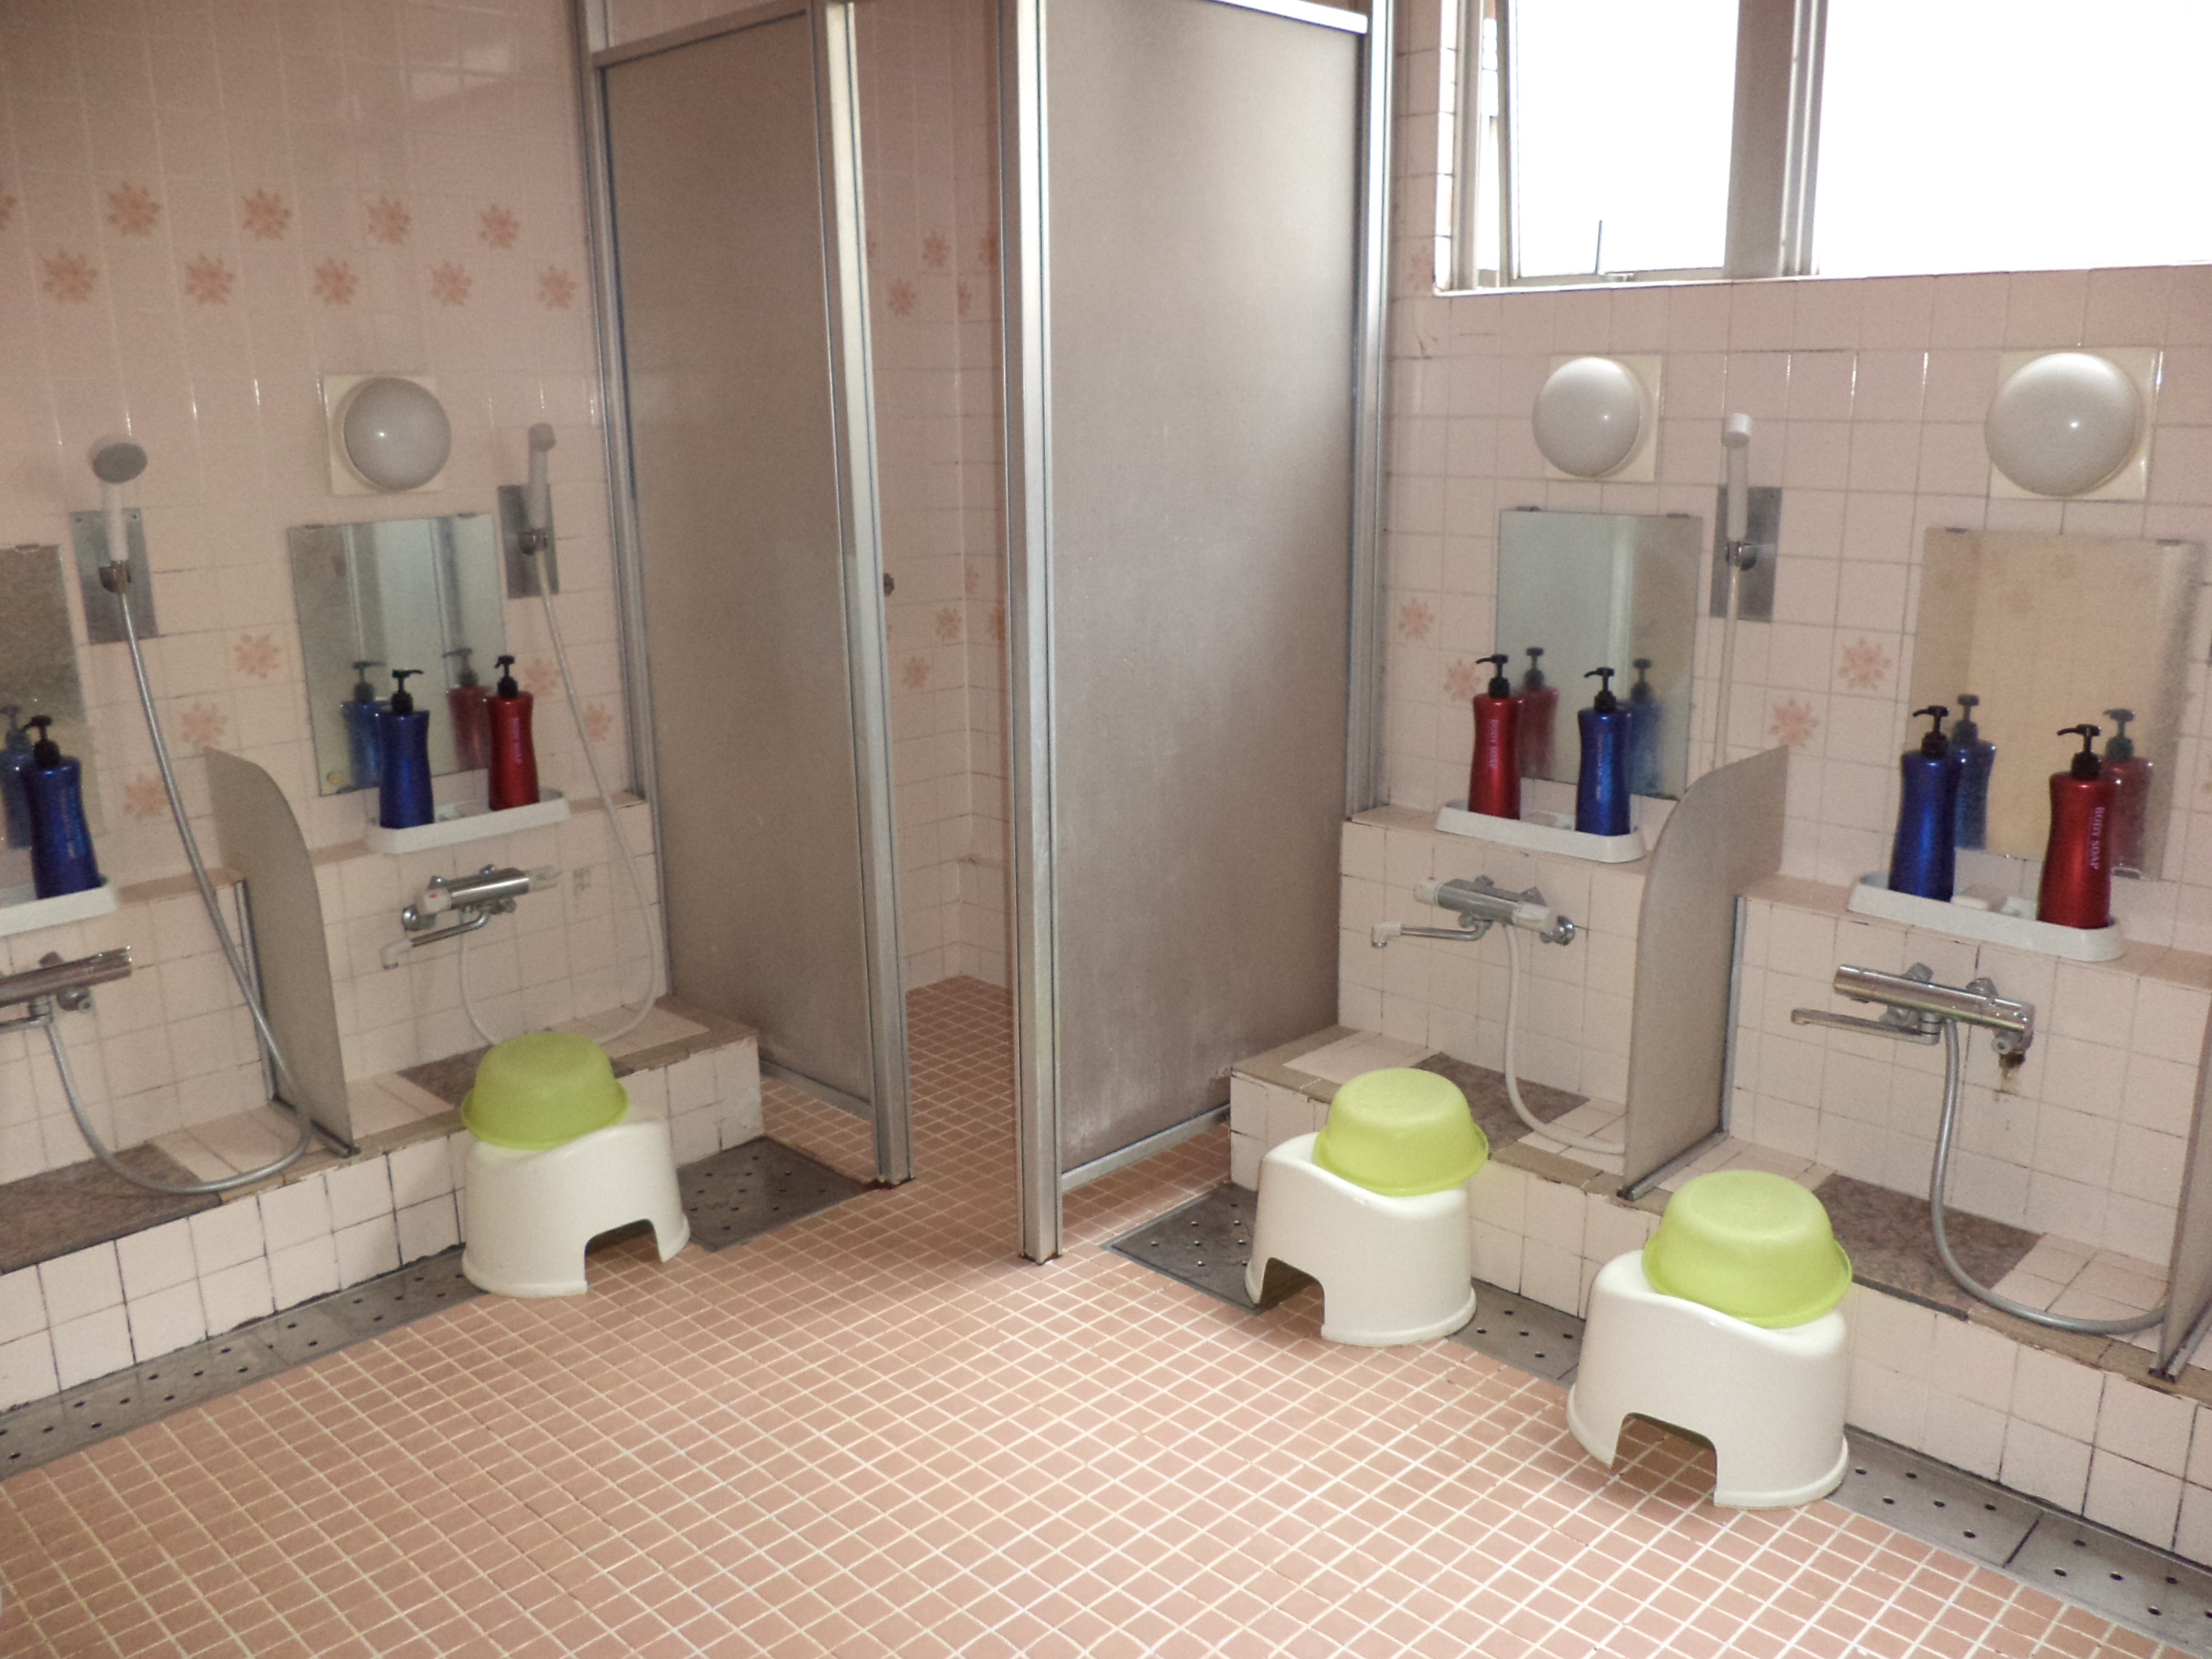 4 budget friendly hostels in japan our journey his glory for Y hotel shared bathroom